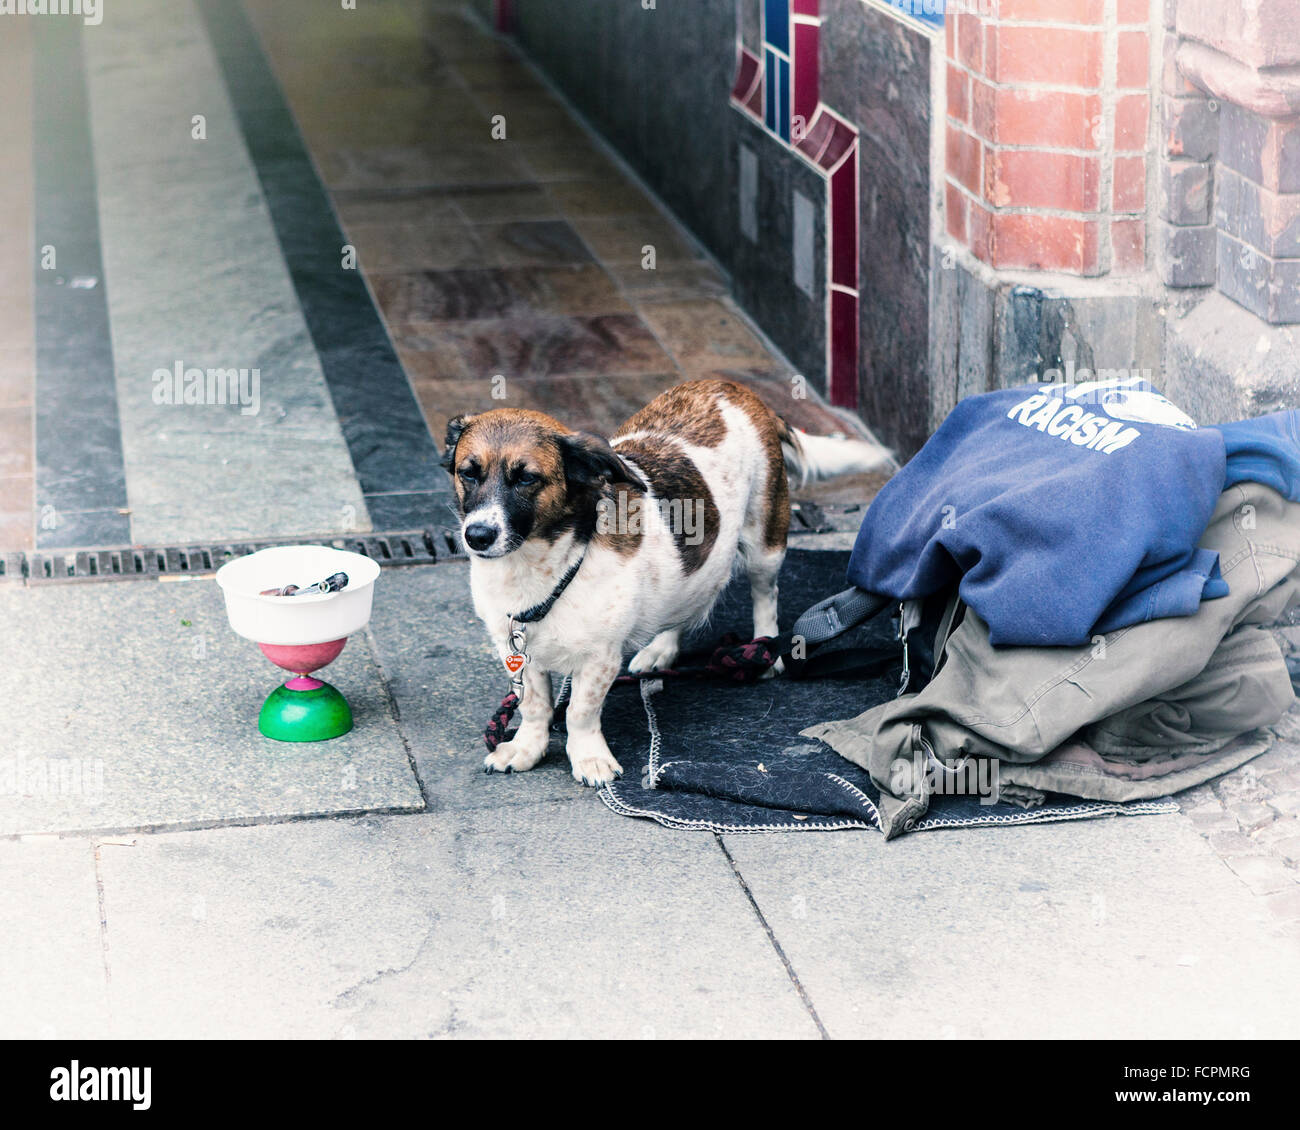 Dog with a moral, anti-racism pet - Stock Image